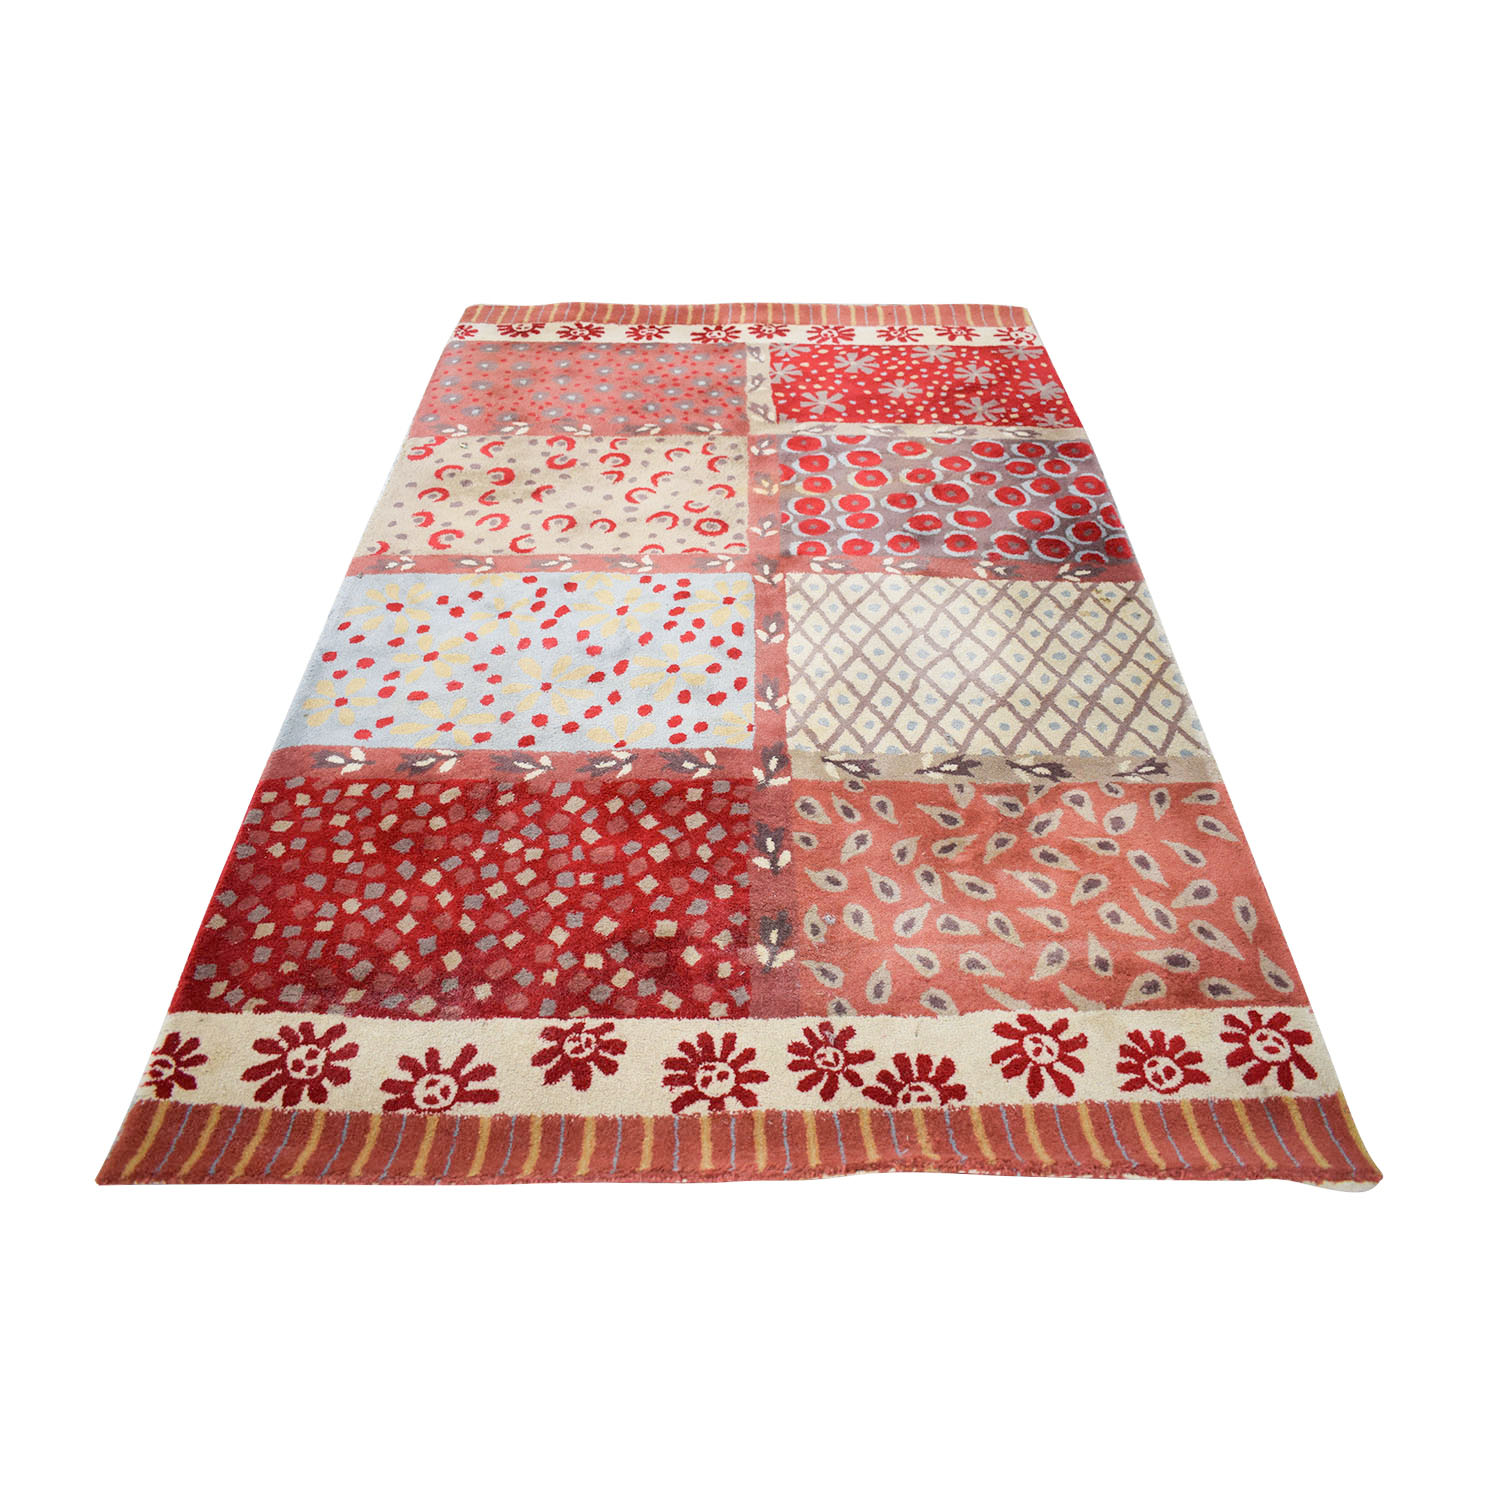 Pottery Barn Pottery Barn Red Multi-Colored Rug nj